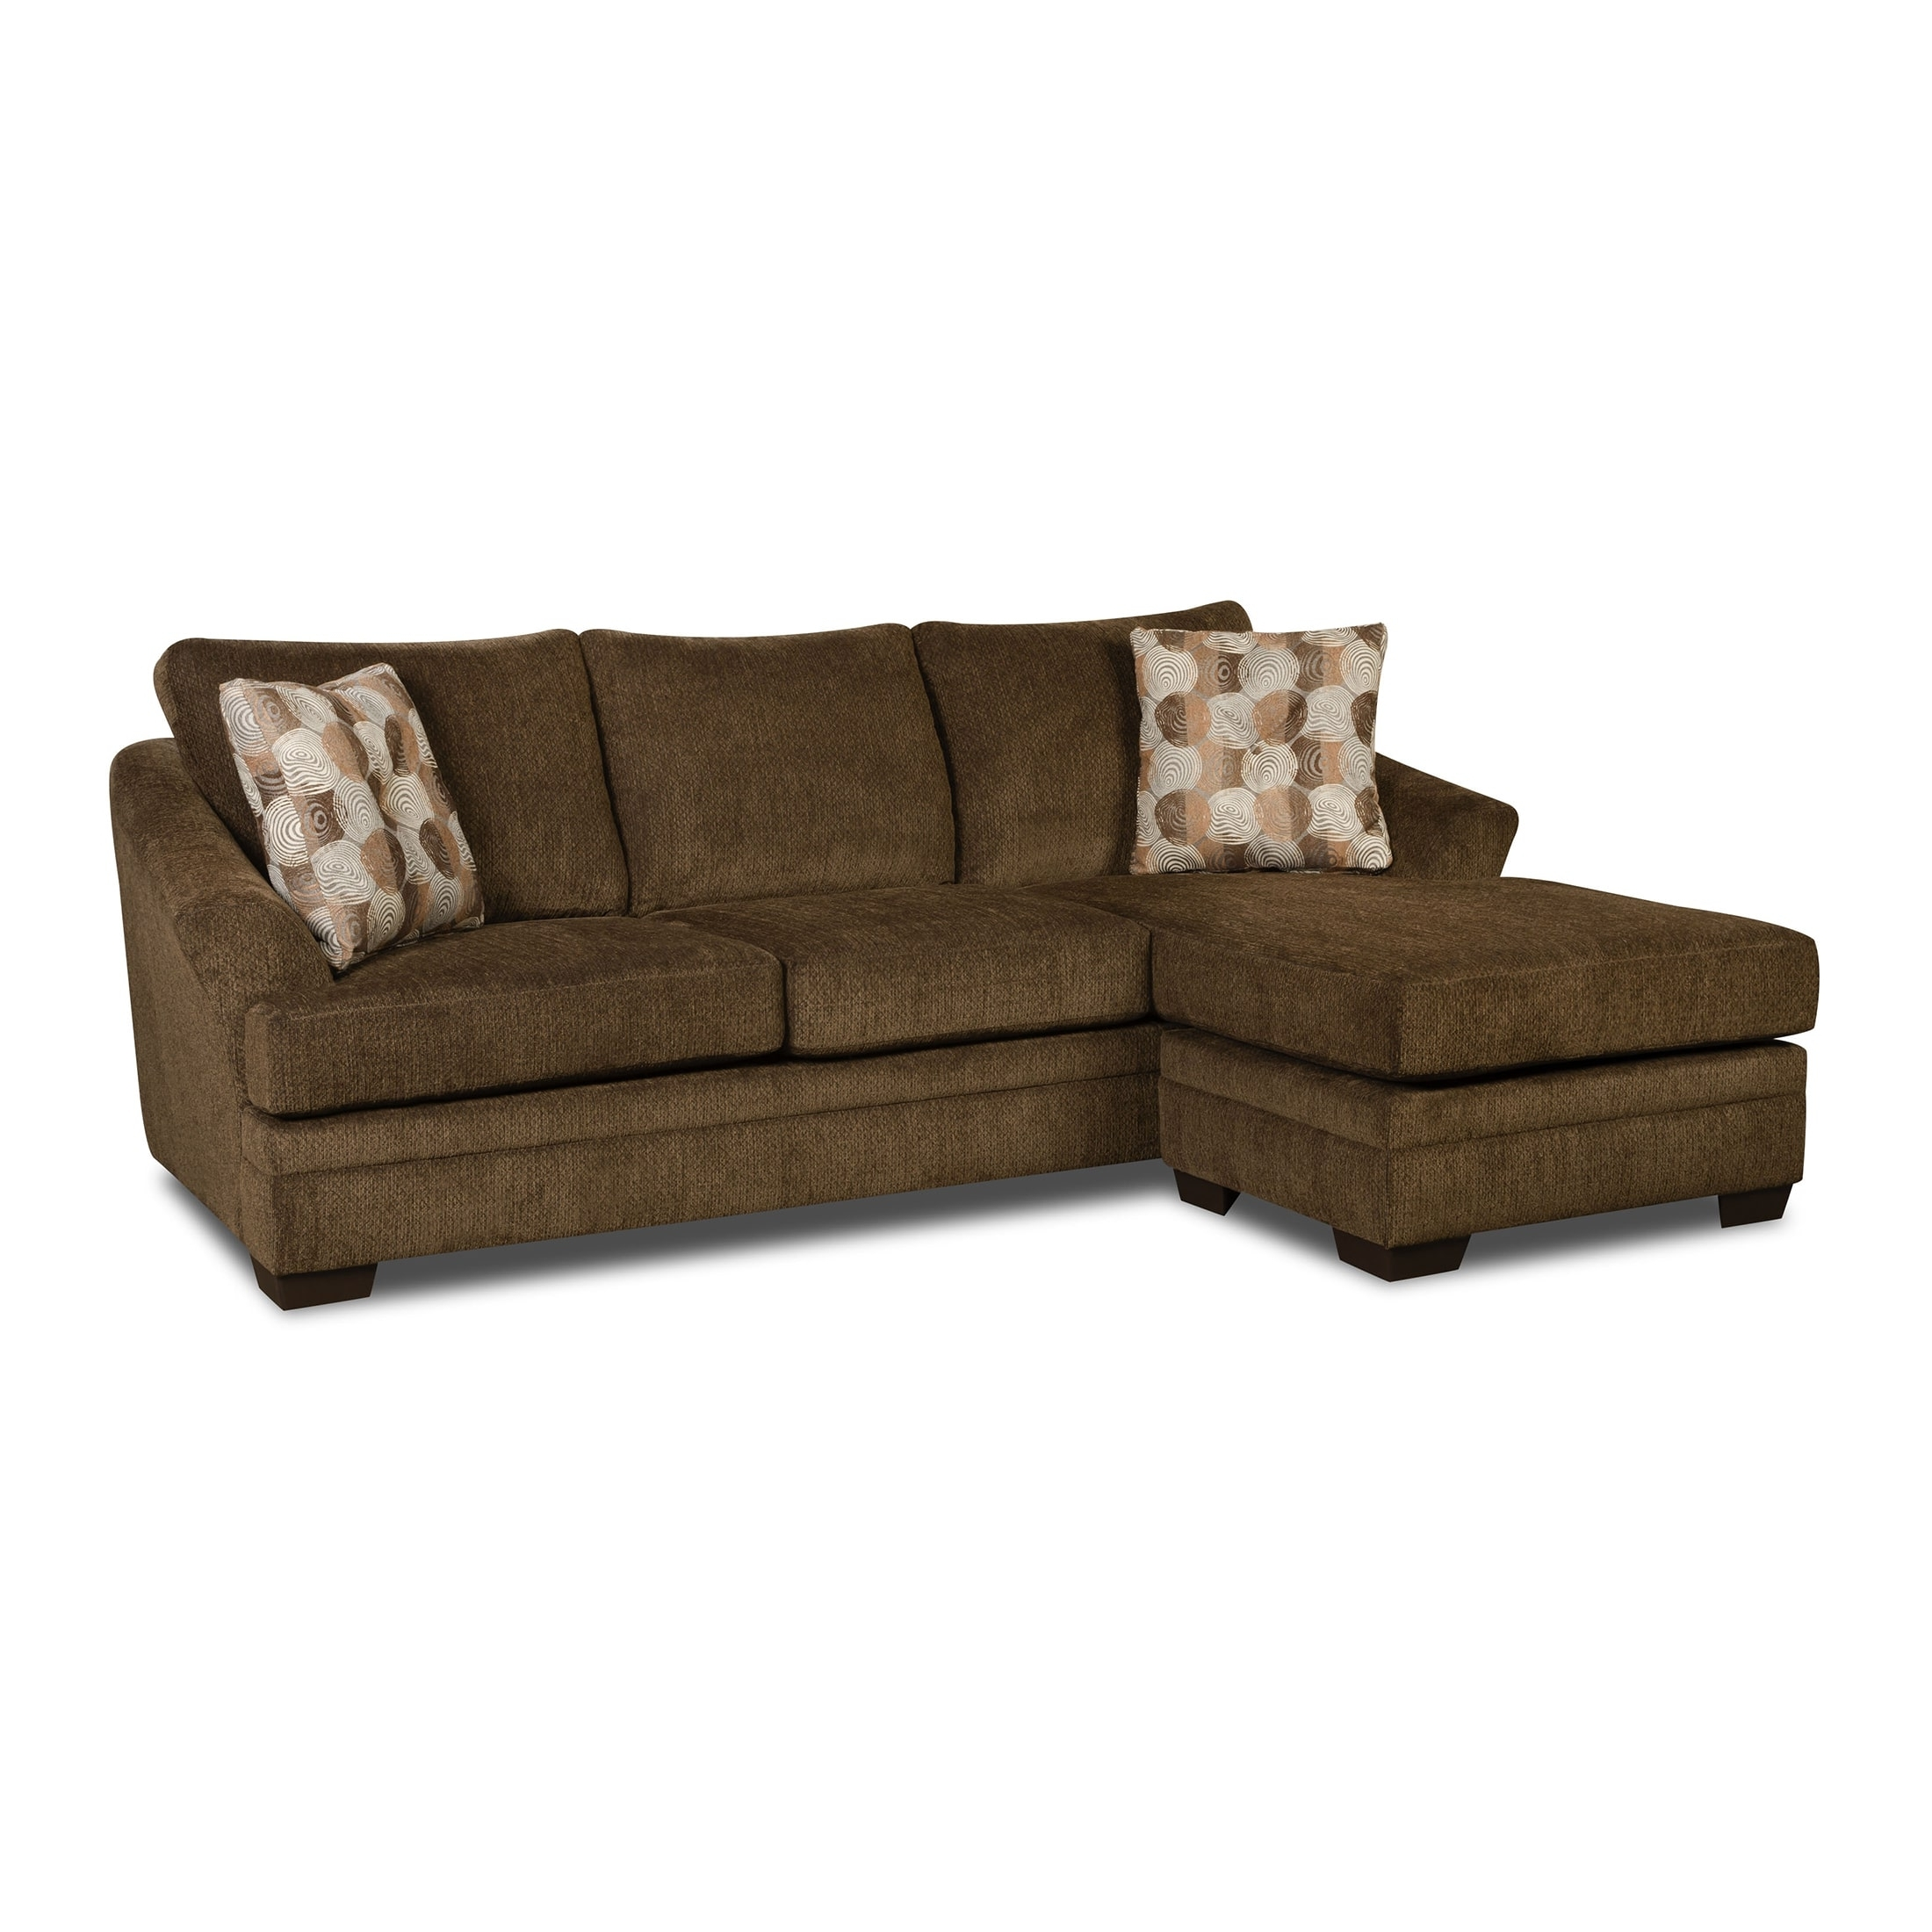 Simmons Upholstery Albany Sofa Chaise – Walmart Throughout Fashionable Simmons Chaise Sofas (View 12 of 20)